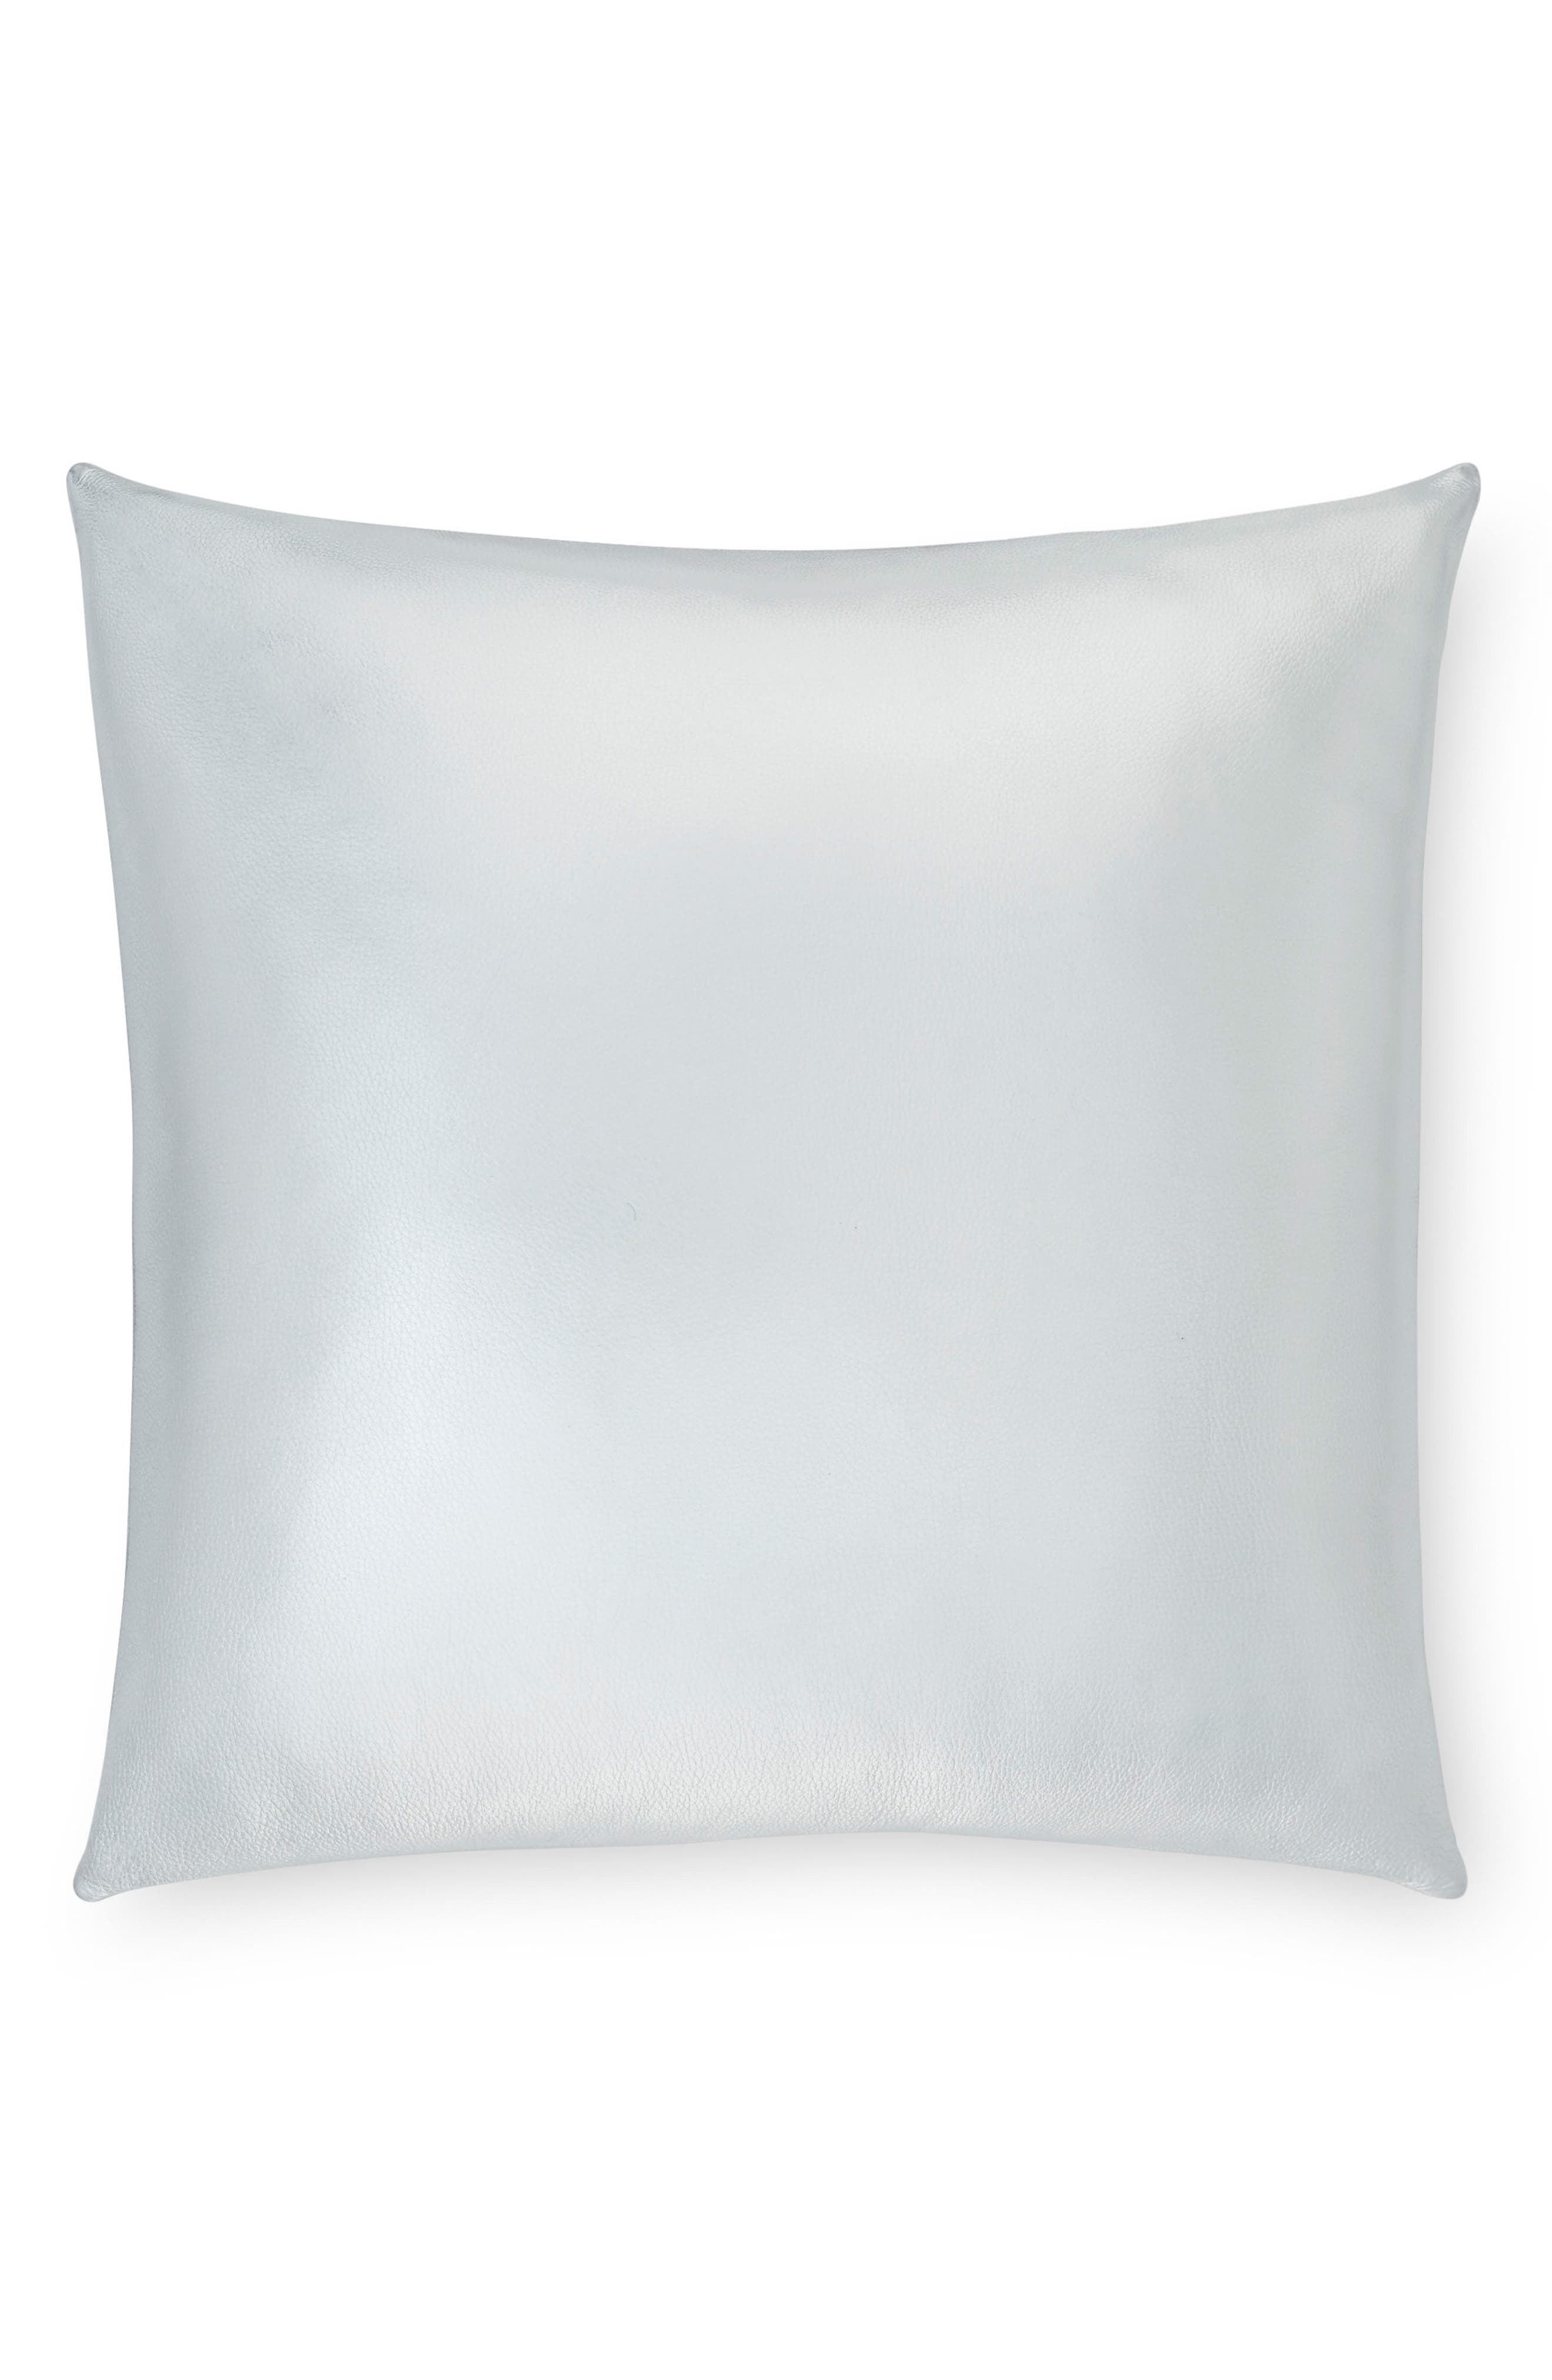 Main Image - SFERRA Satta Leather Accent Pillow